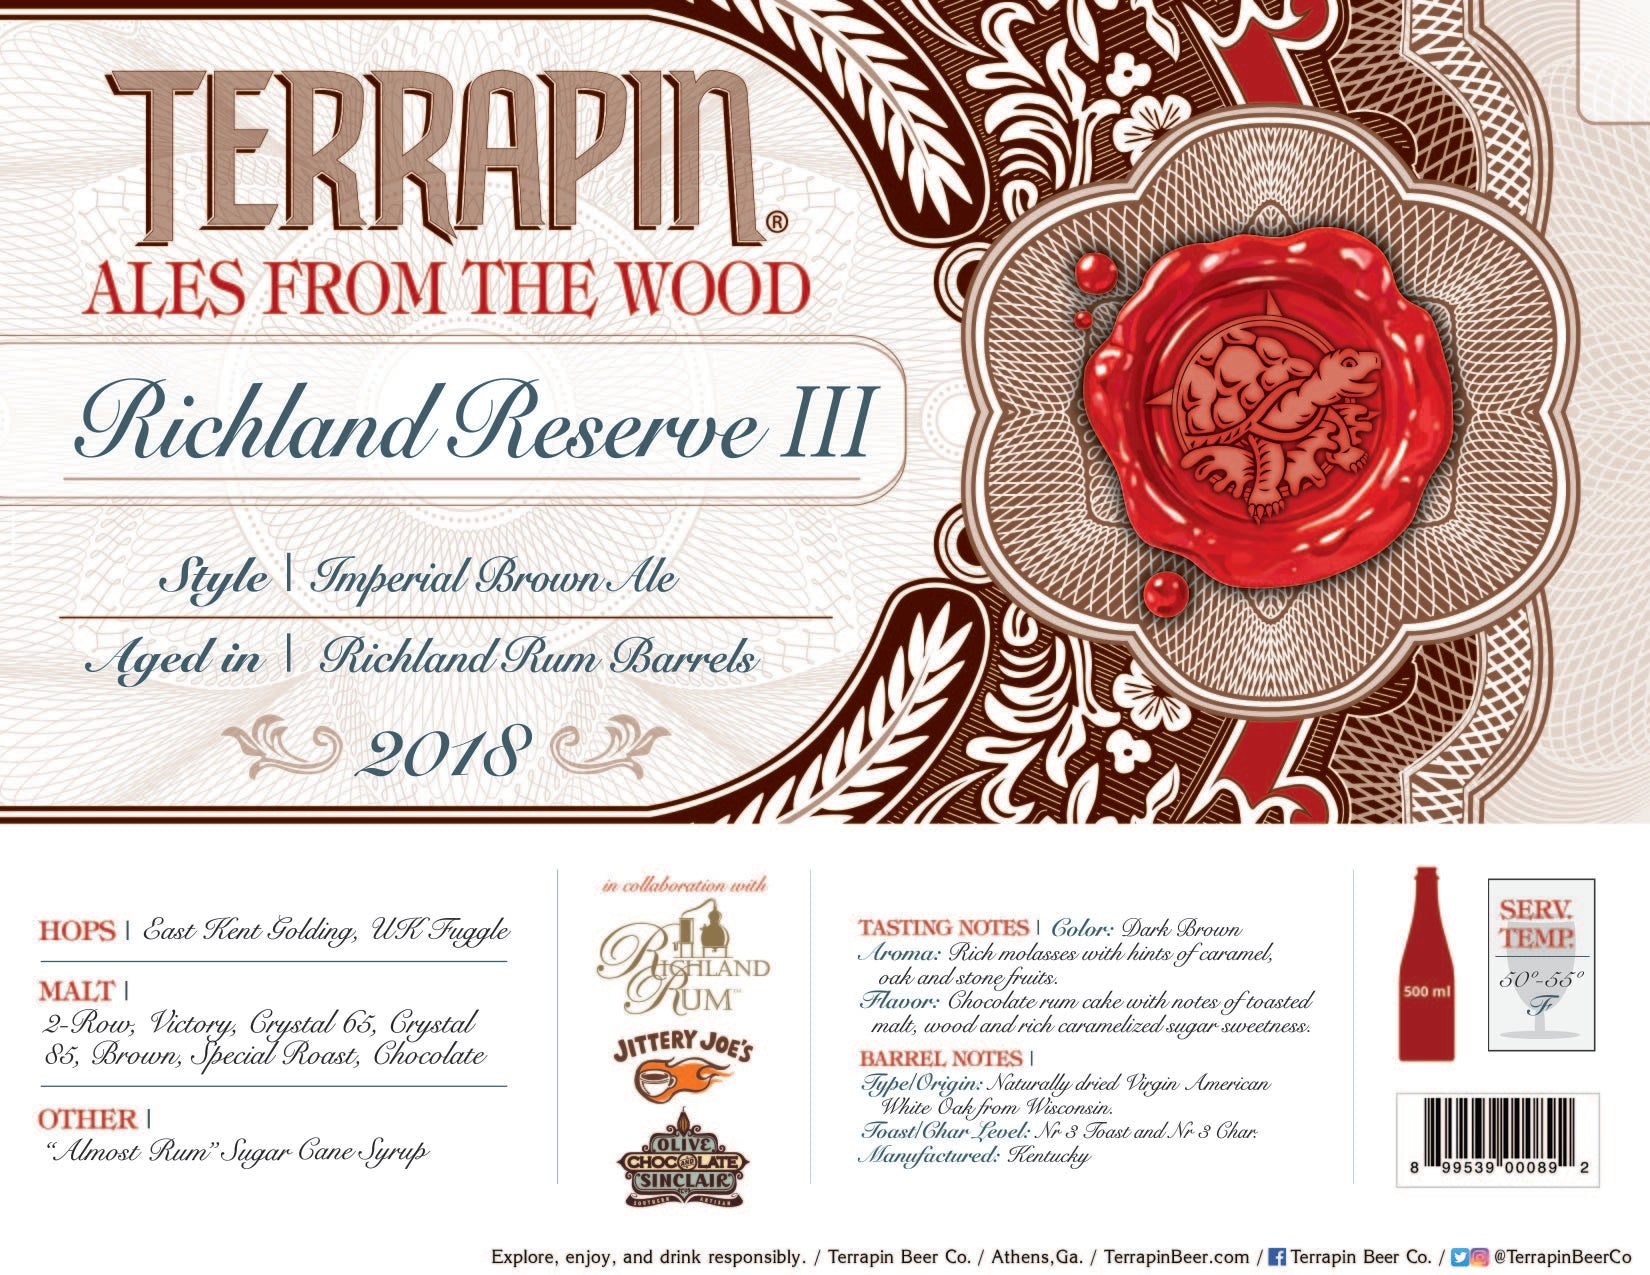 Richland Reserve III Barrel-Aged Imperial Brown Ale